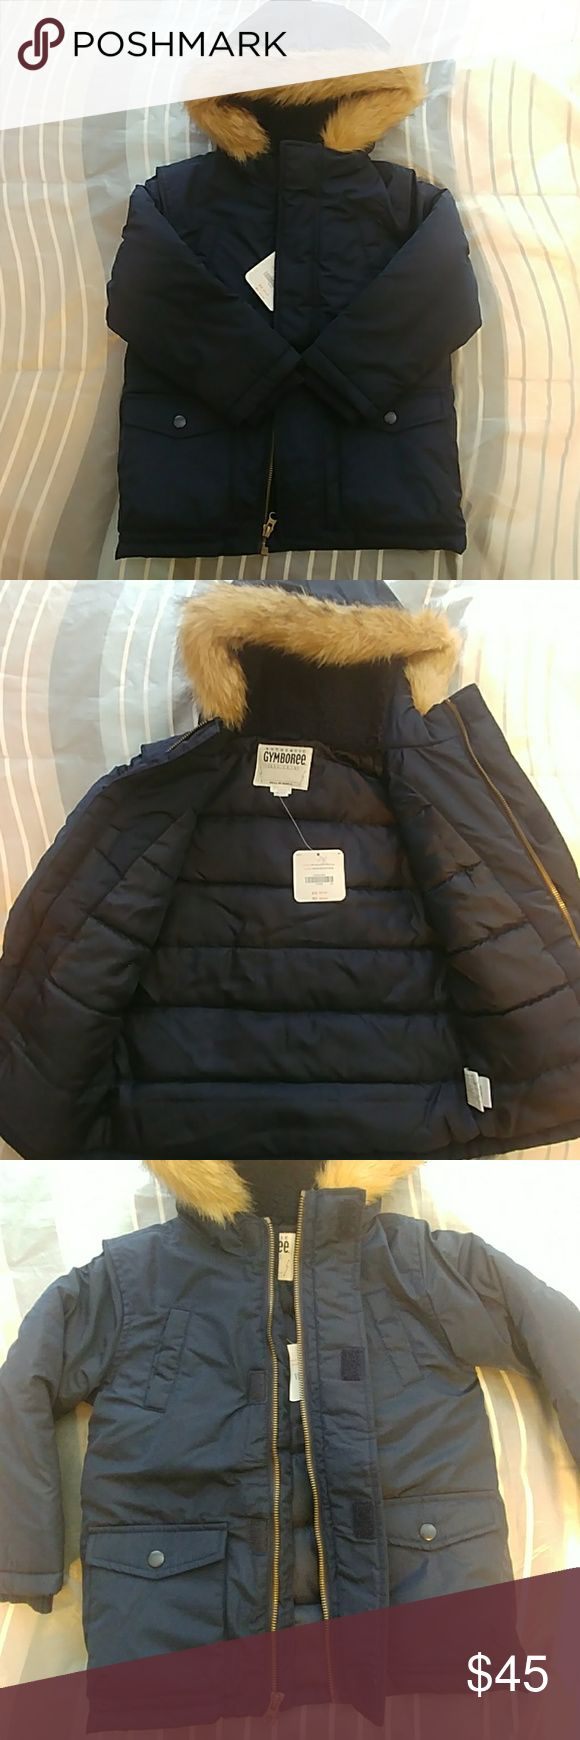 🌟Authentic Gymboree Boys Coat! Brand New!!! Boys Winter Coat!!! It's faux fur around the hood but its soft not hard. It's from Gymboree!!! Excellent Condition. Gymboree Jackets & Coats